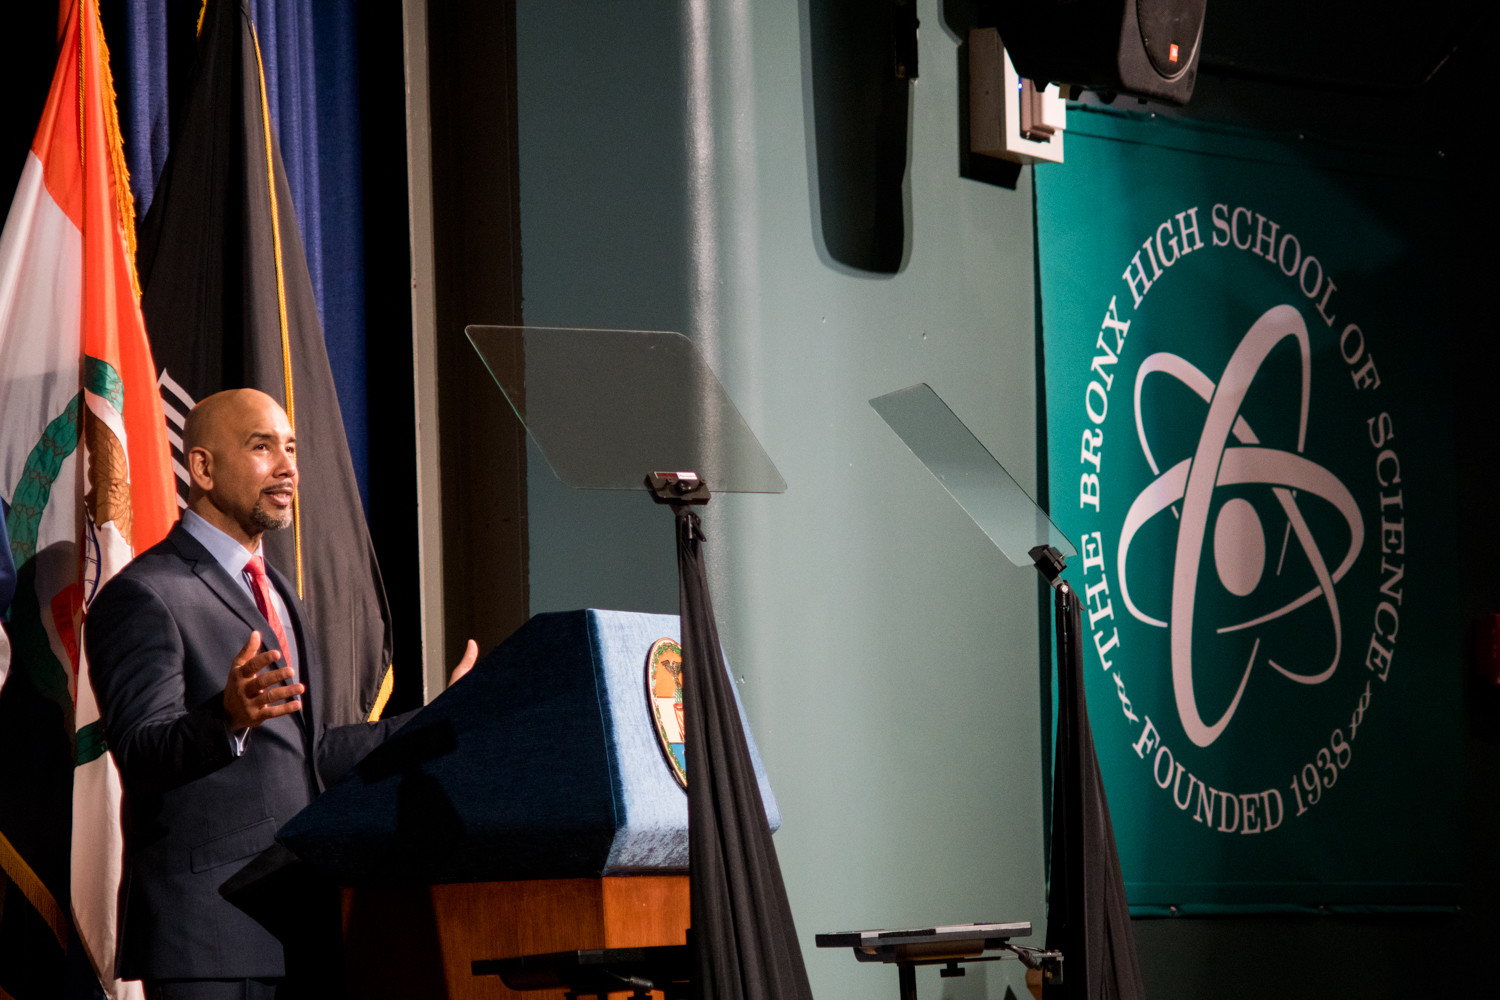 Bronx borough president Ruben Diaz Jr., gives a rousing conclusion to his state of the borough address at the Bronx High School of Science. Having attracted billions of dollars in infrastructure spending, creating thousands of new jobs, helping new businesses expand, and becoming a destination for visitors from around the globe, Diaz called the borough's future bright.